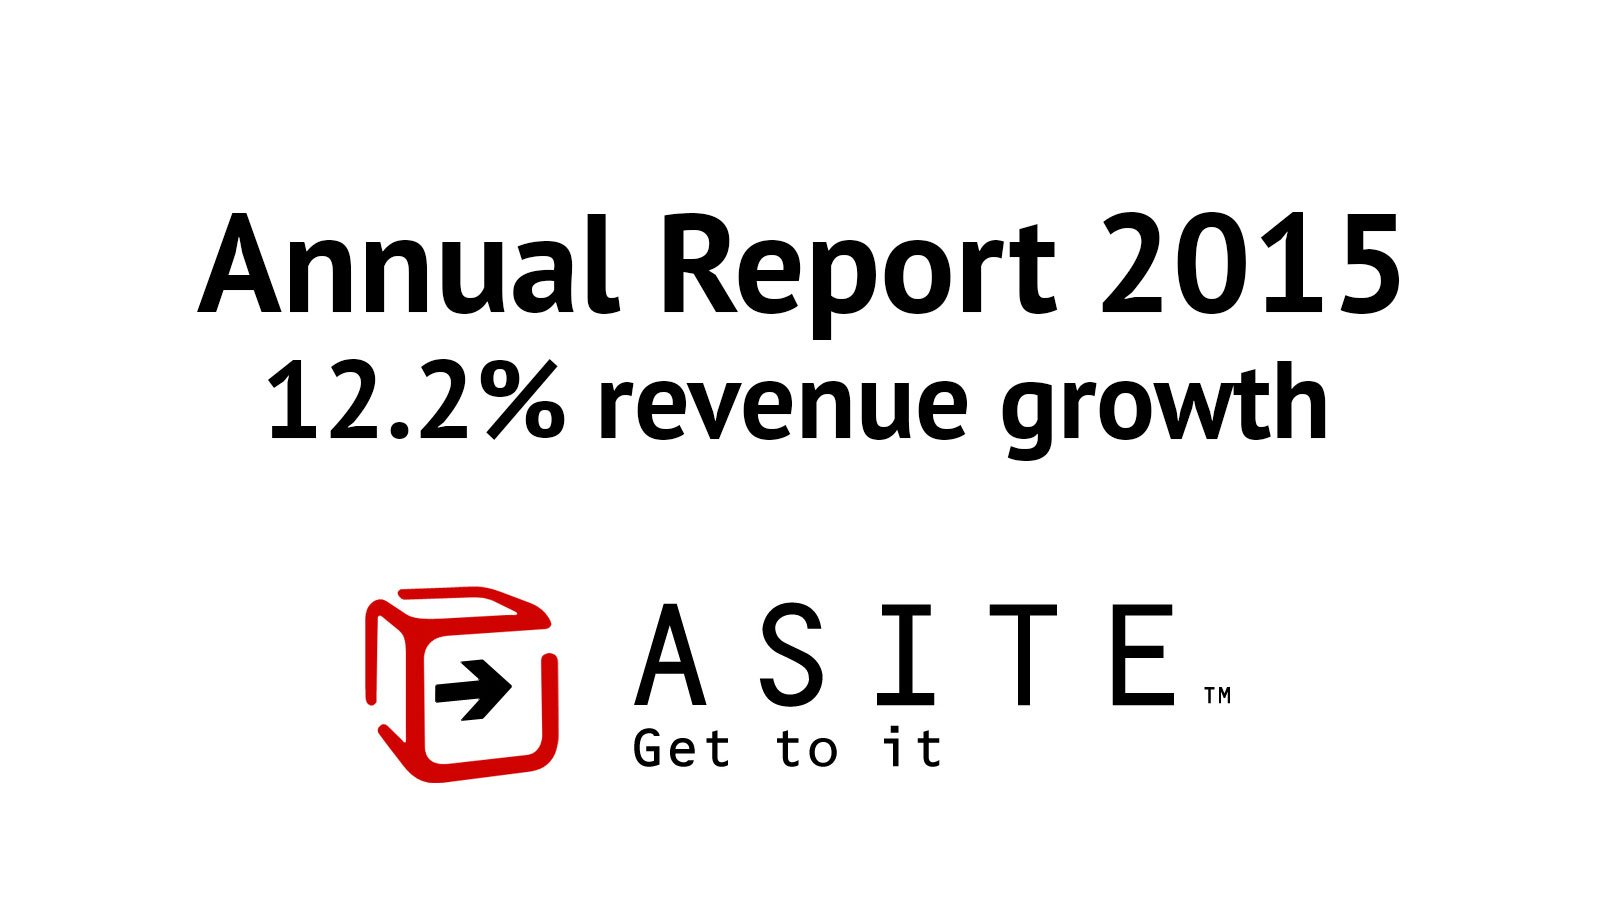 Global cloud collaboration provider Asite announces 12.2% revenue growth in its 2015 Annual Report